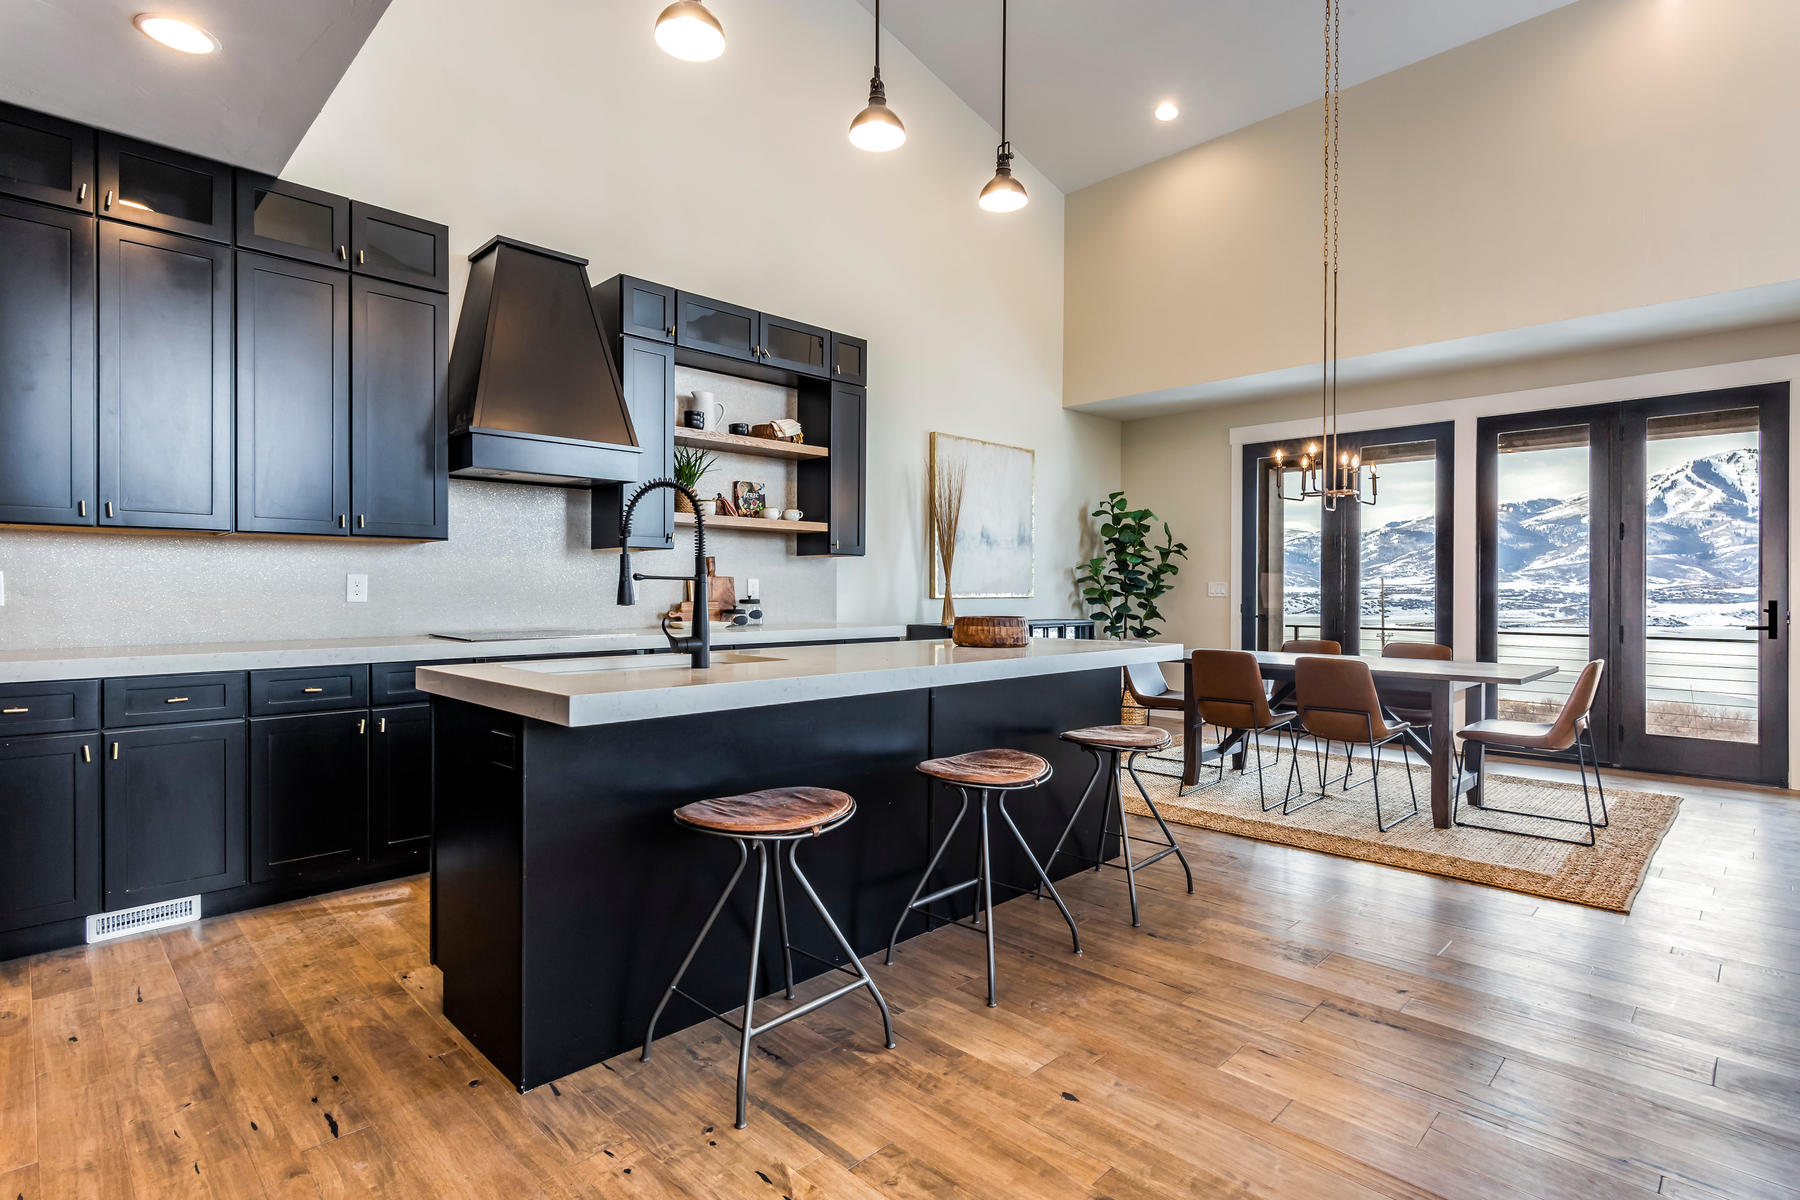 townhouses vì Bán tại New Lakefront Community with Views of Deer Valley Resort & Jordanelle Reservoir 351 E Overlook Loop, Lot 26, Hideout Canyon, Utah 84036 Hoa Kỳ